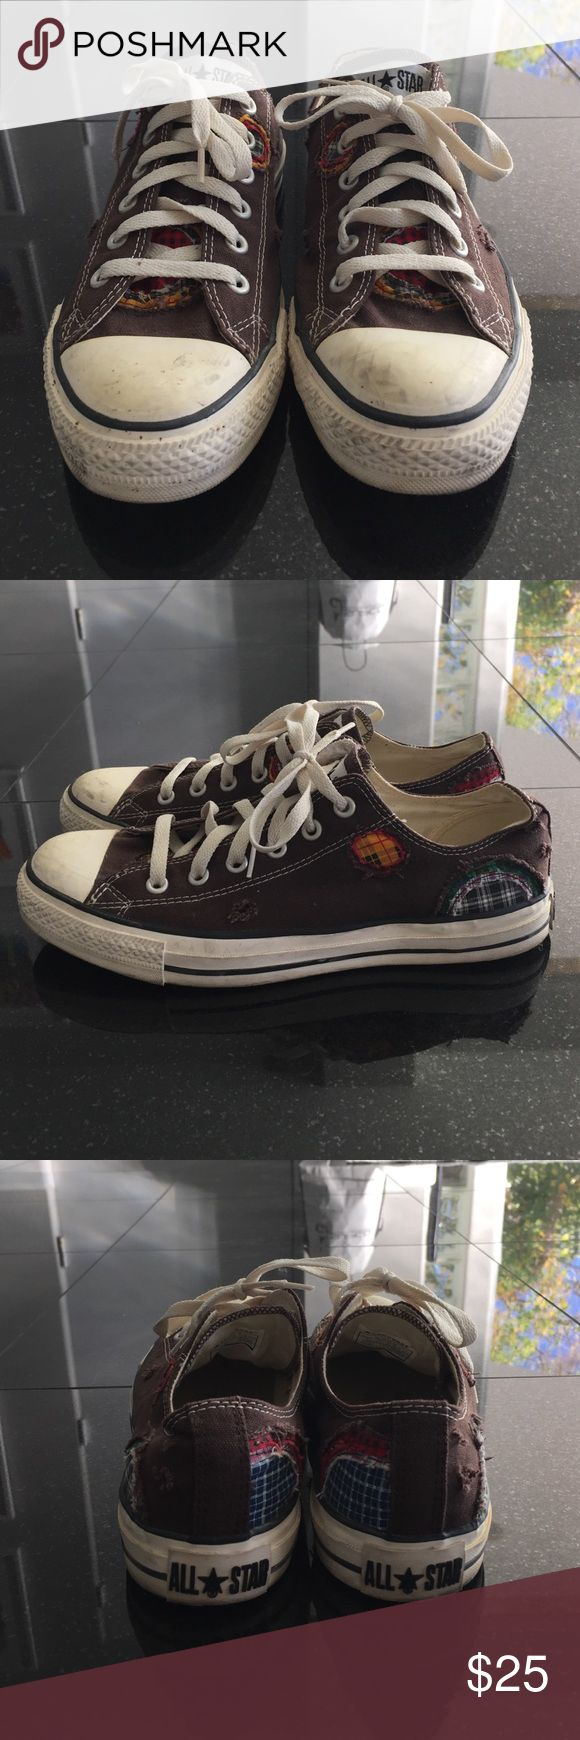 Converse shoes Men's All Star Converse. Women's size 10 or Men's size 8. Brown with multiple plaid print patches. Converse Shoes Sneakers